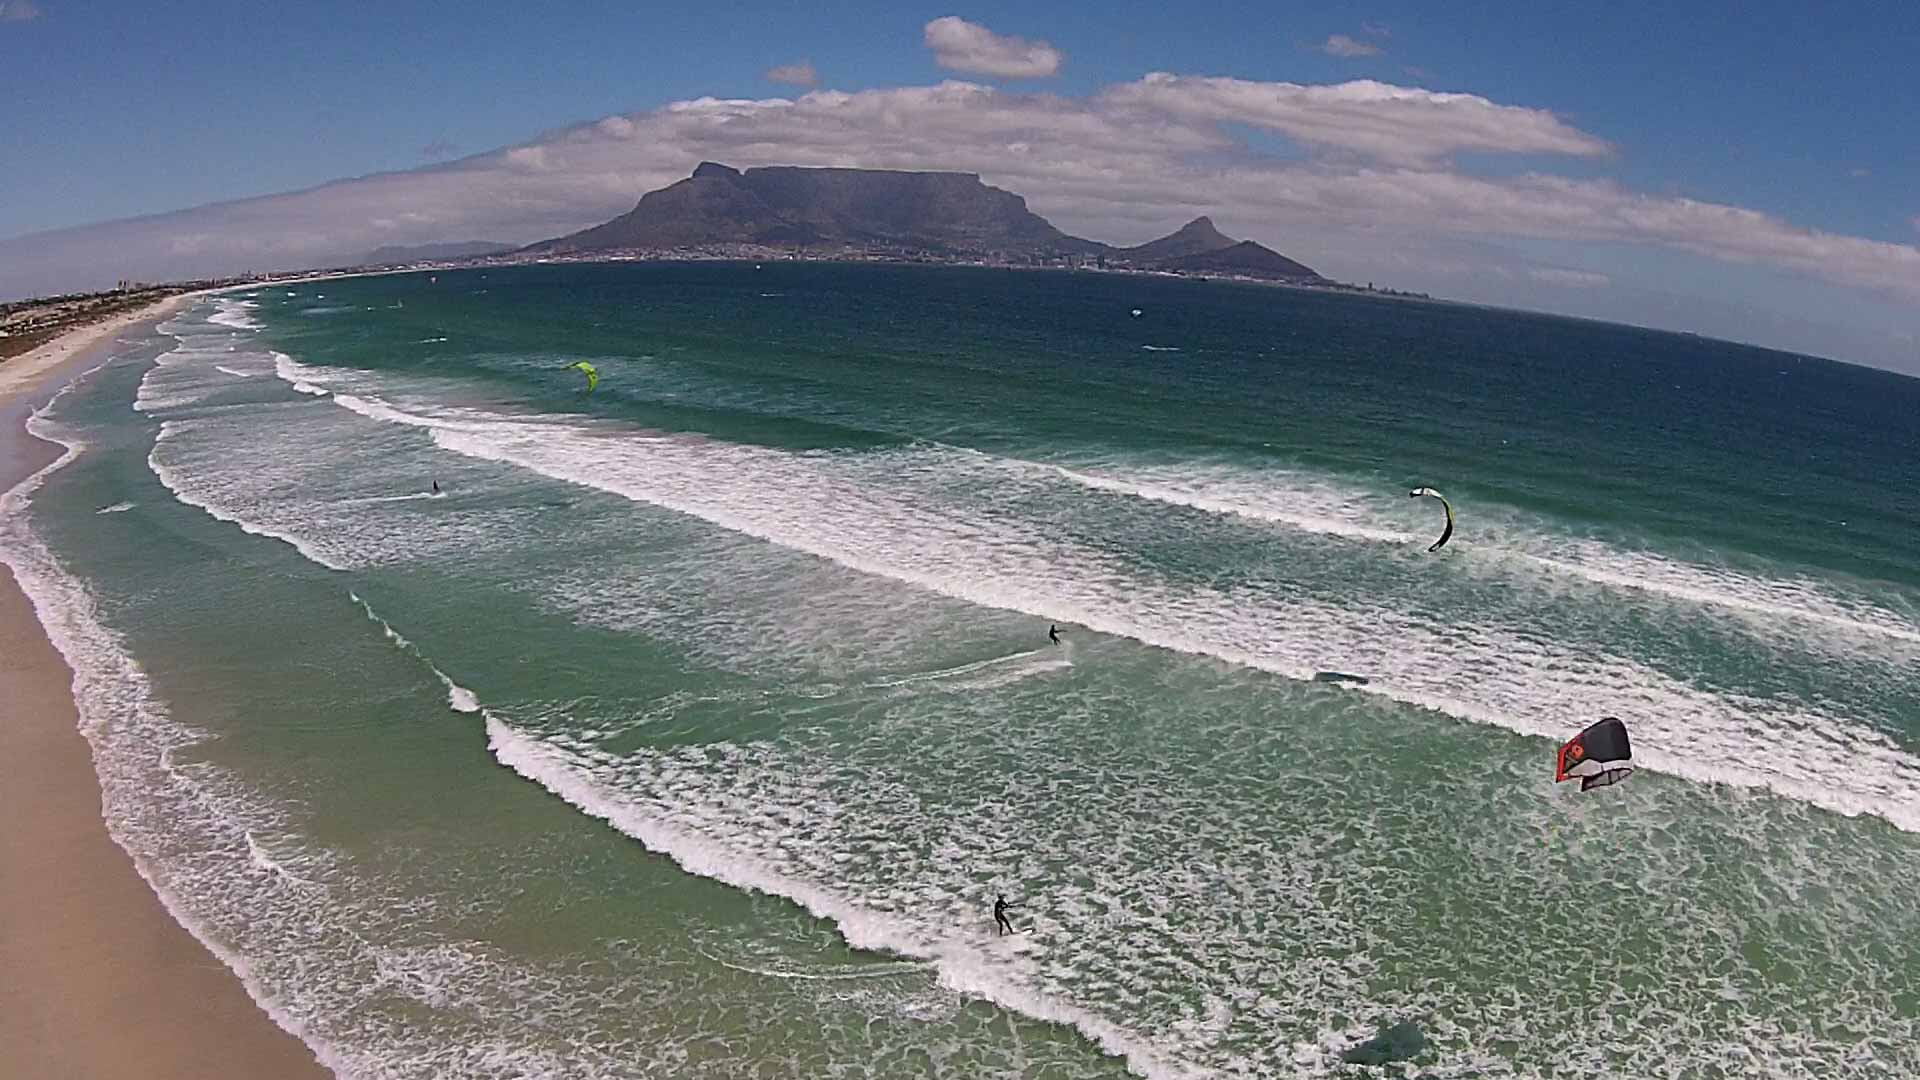 wave kitesurfing lessons Cape Town